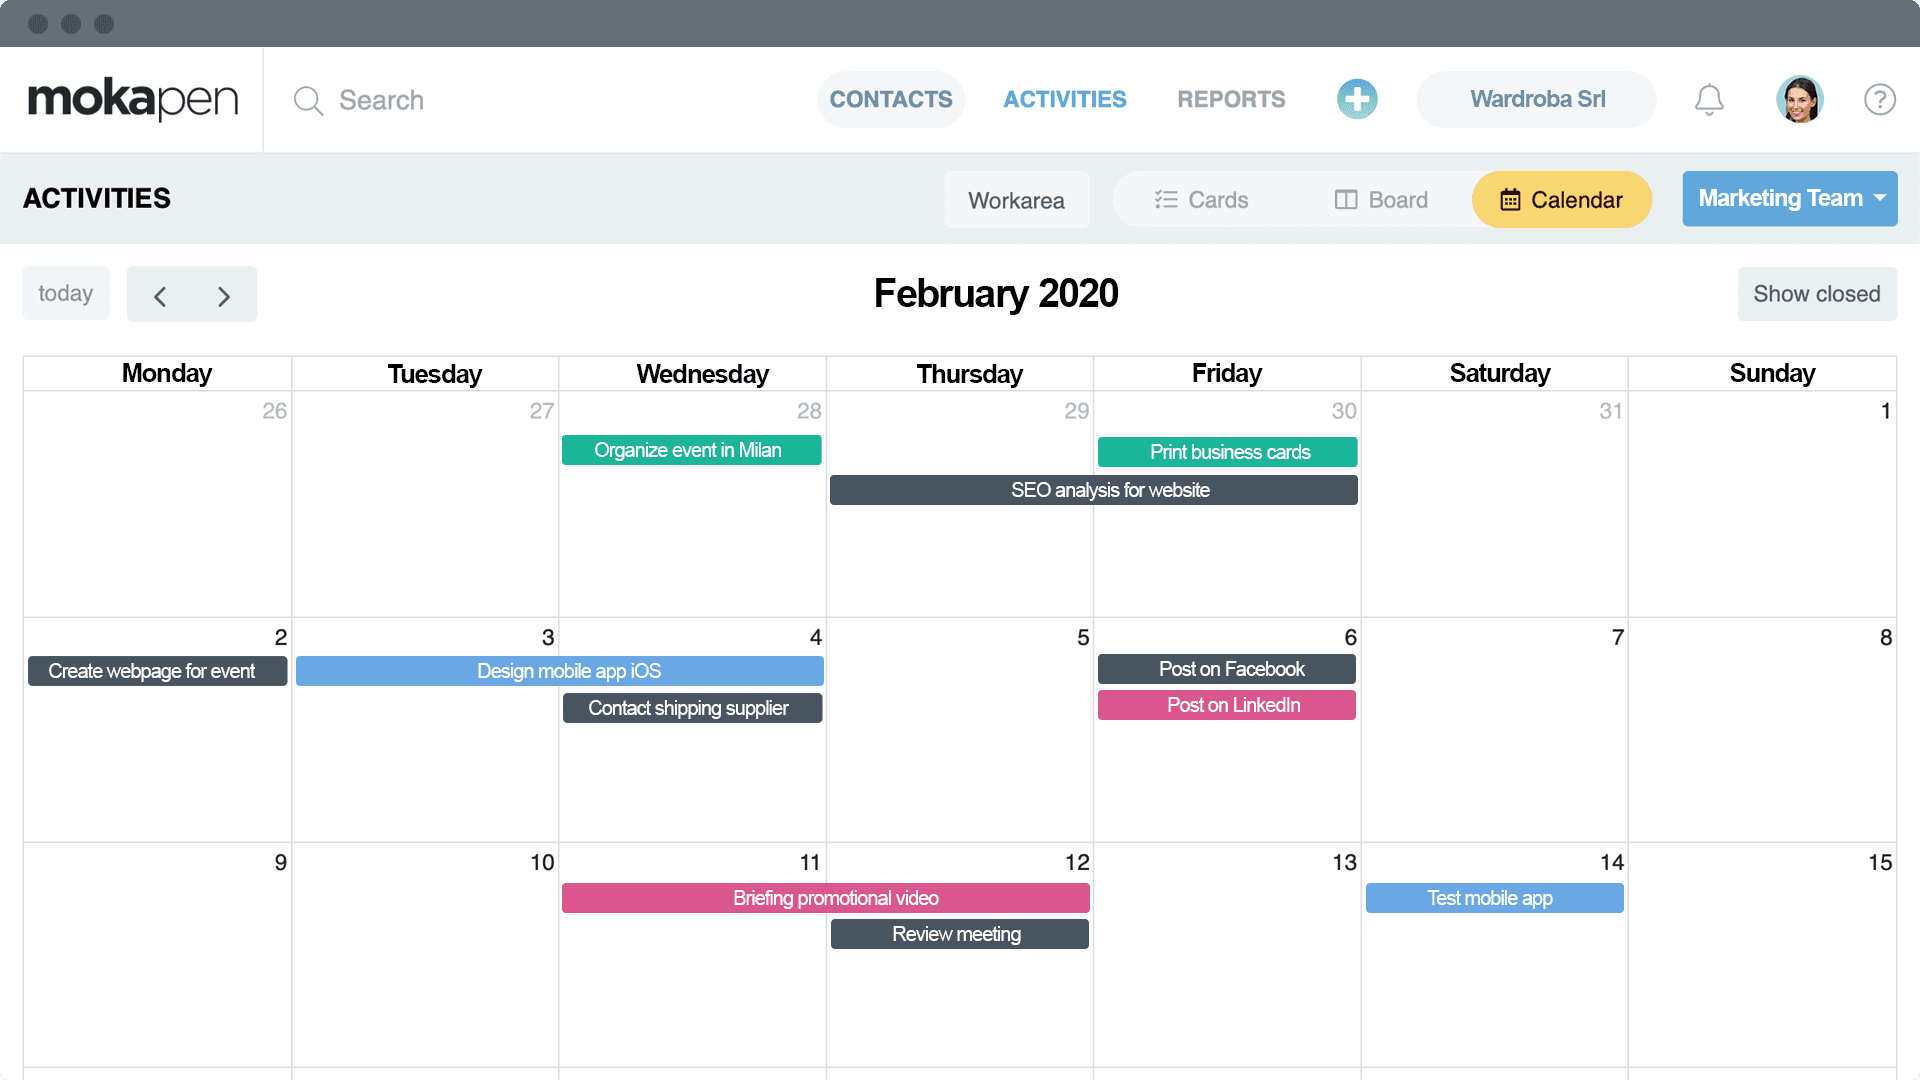 Activate the calendar view for your tasks. It will be easier plan activities by day, week or month. You can also integrate it with Google Calendar!